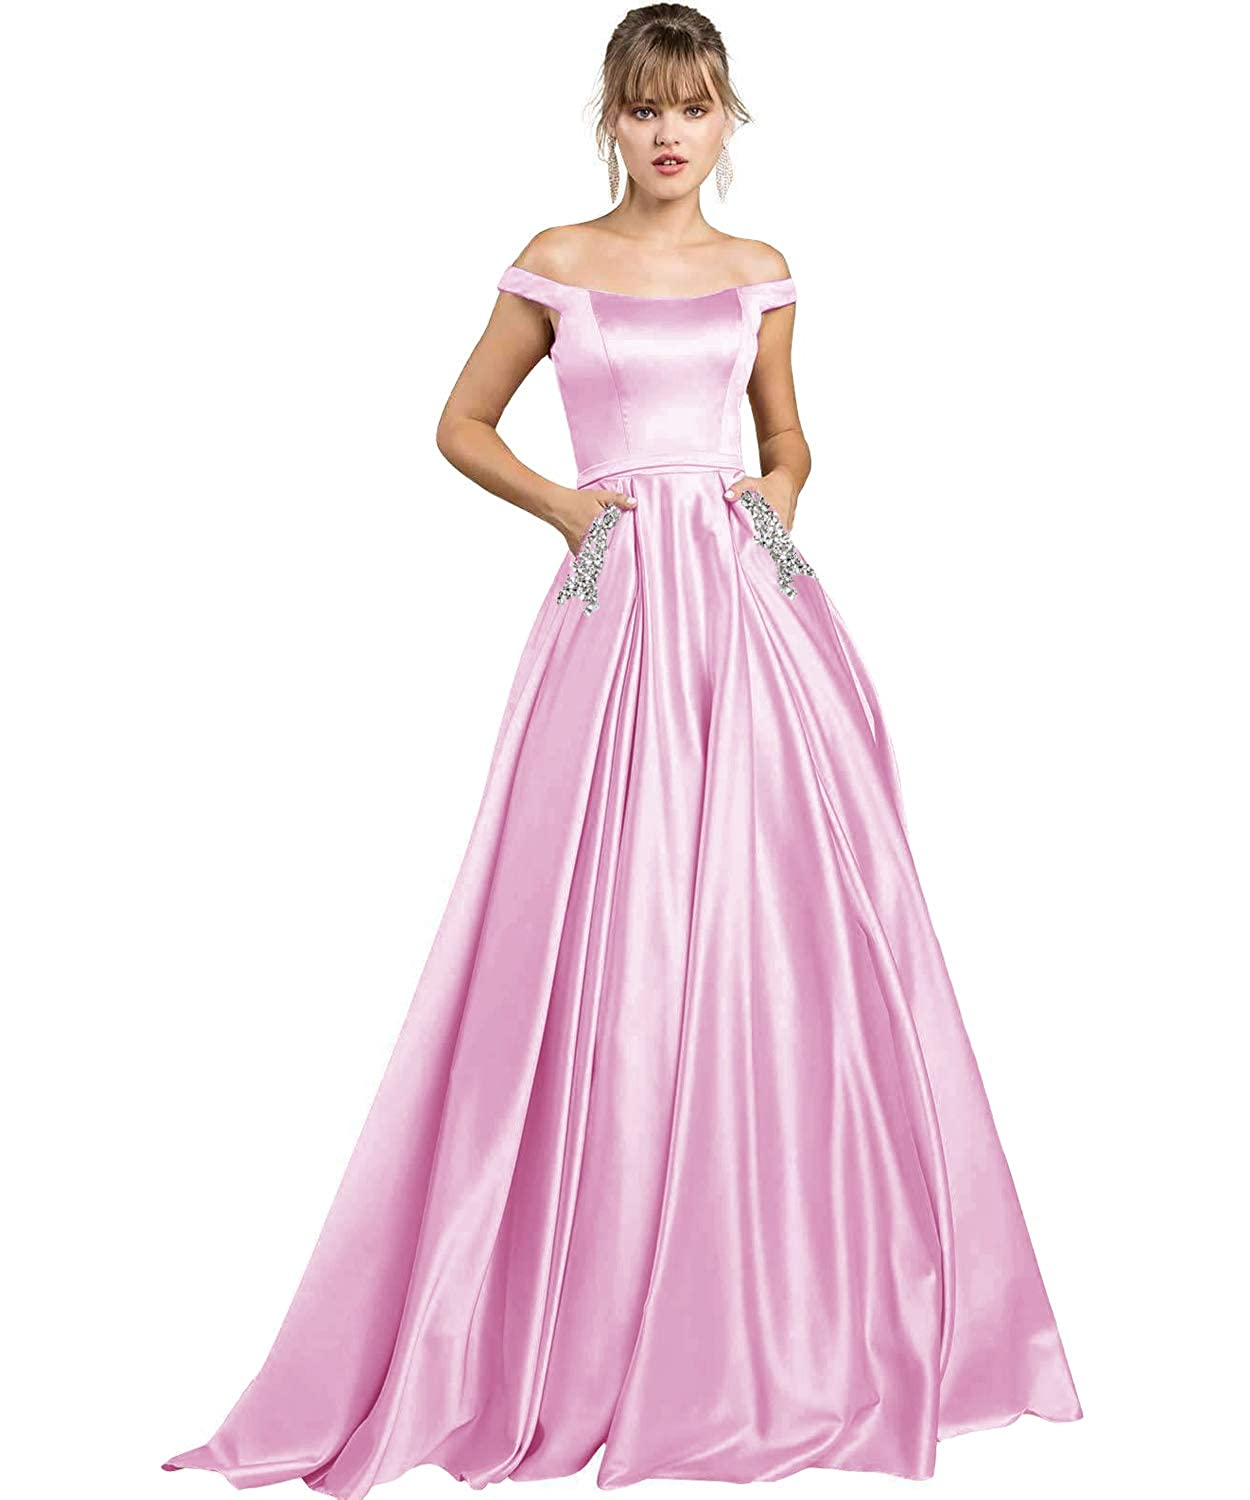 Pink Yilis Women's High Neck Halter A Line Satin High Low Prom Dress Wedding Evening Dress